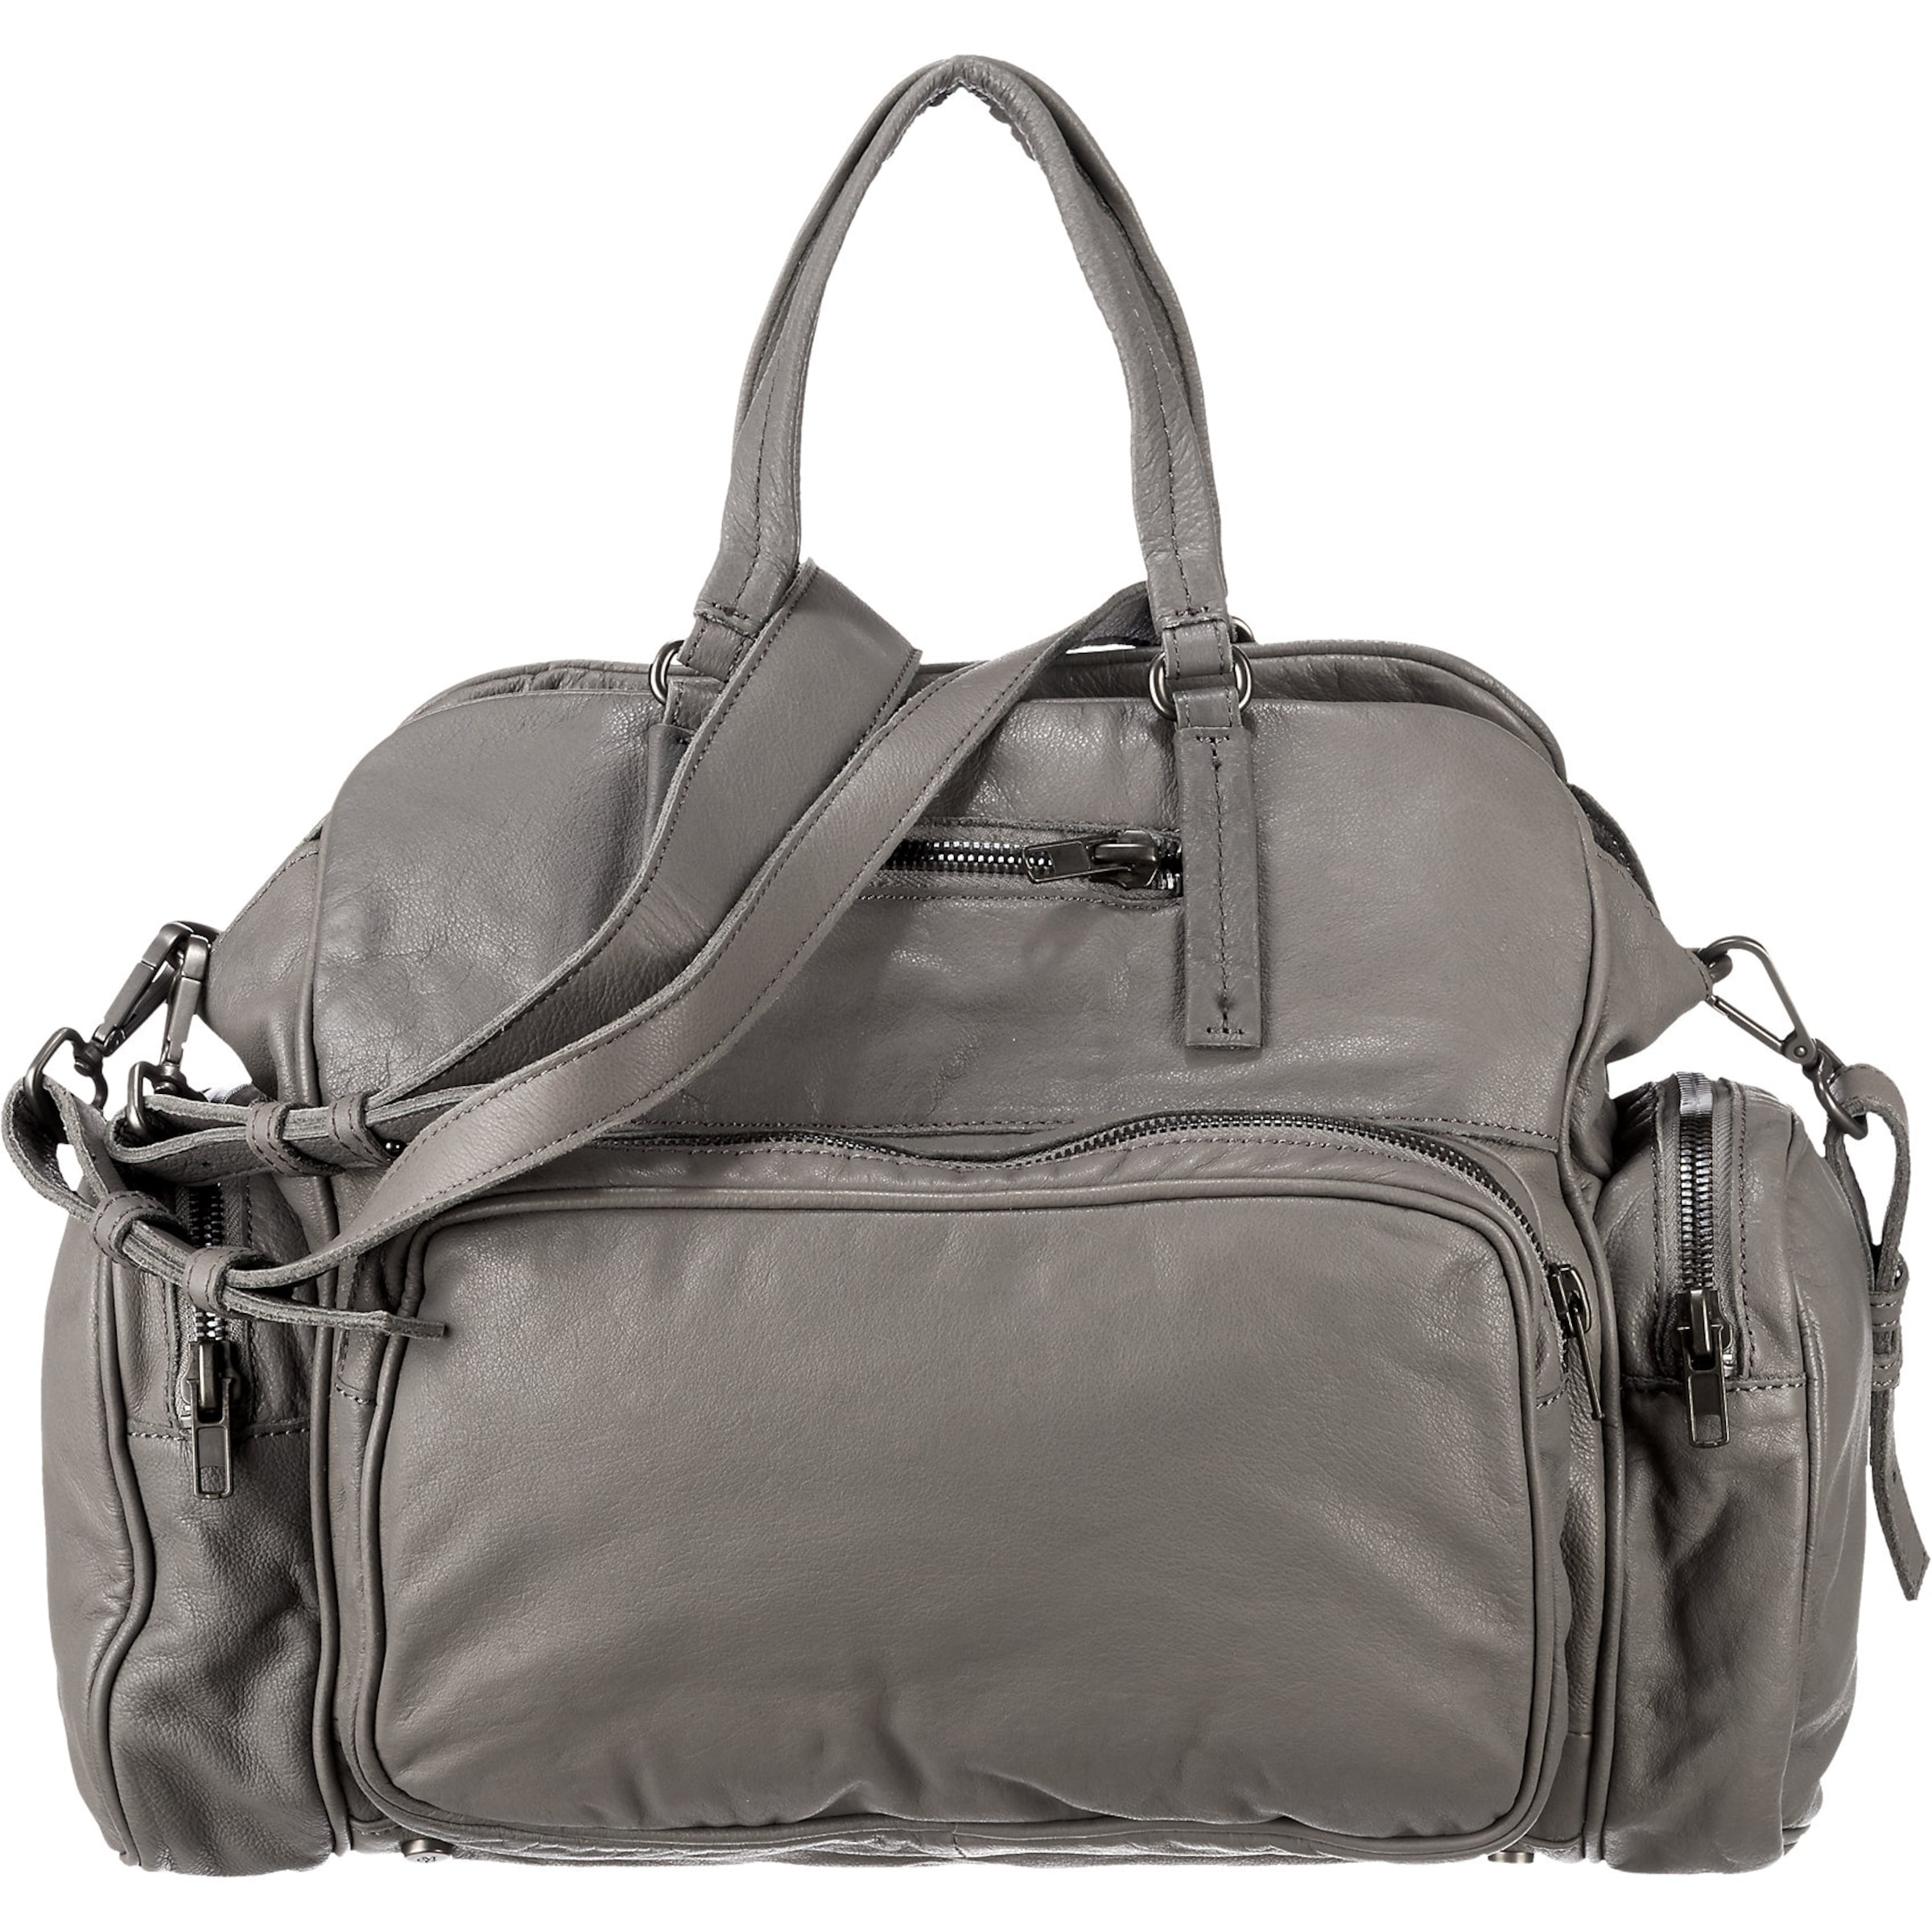 Marc O'Polo 'Forty' Handtasche